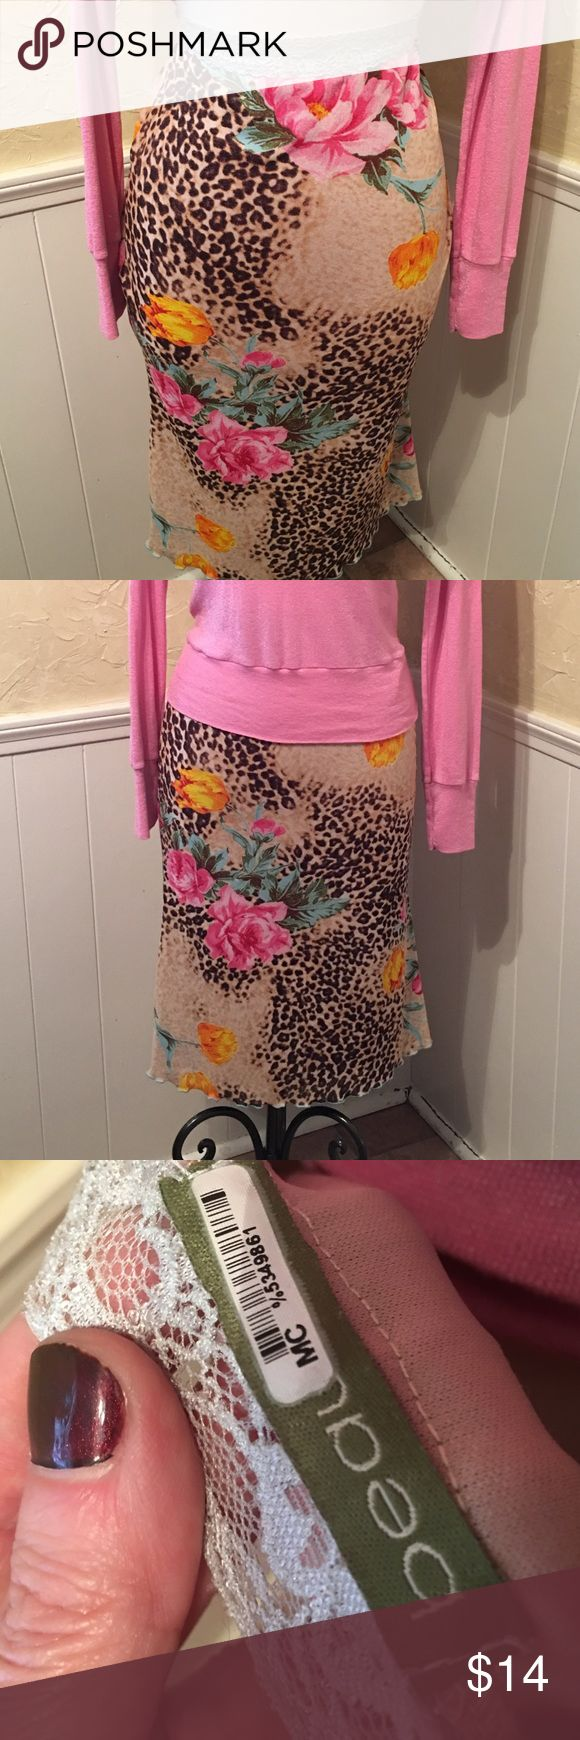 Printed Midi Skirt with Elastic Waist Printed Midi Skirt with Elastic Waist. Cheetah background print with bright pink roses. Very comfortable material and in good condition. beau bois Skirts Midi